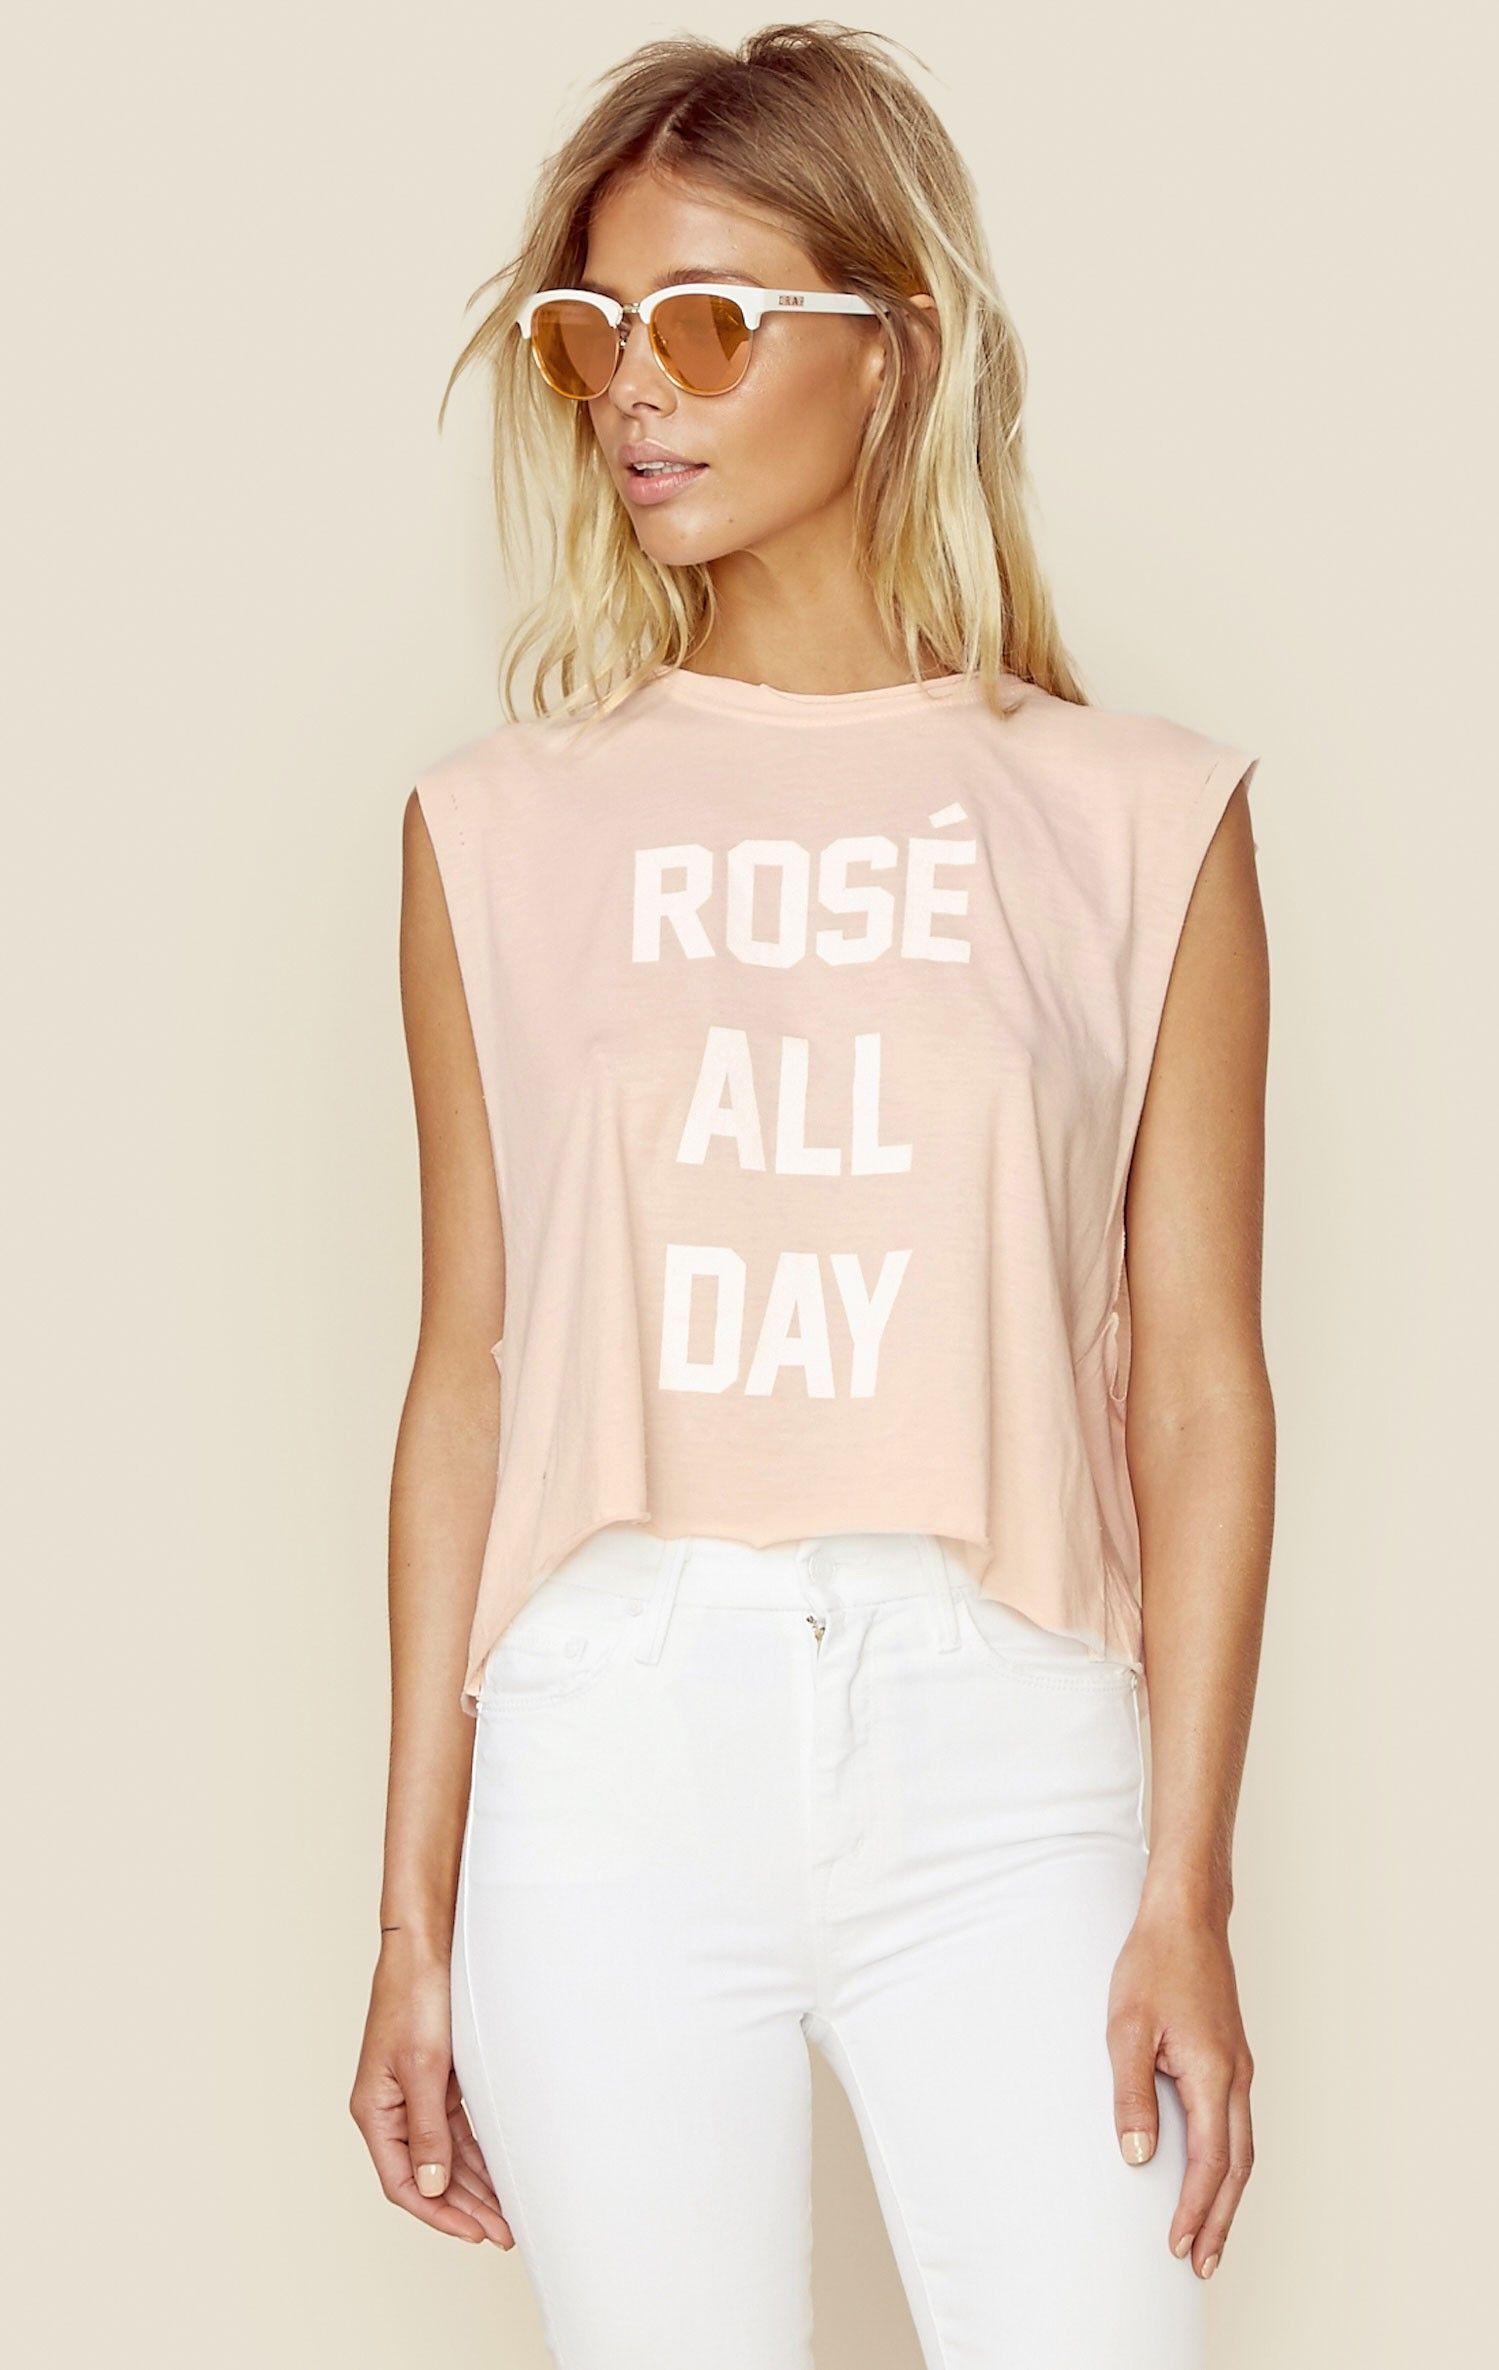 adaeec13 Rose all day muscle tank | NEW ARRIVALS | Fashion, Muscle tanks ...